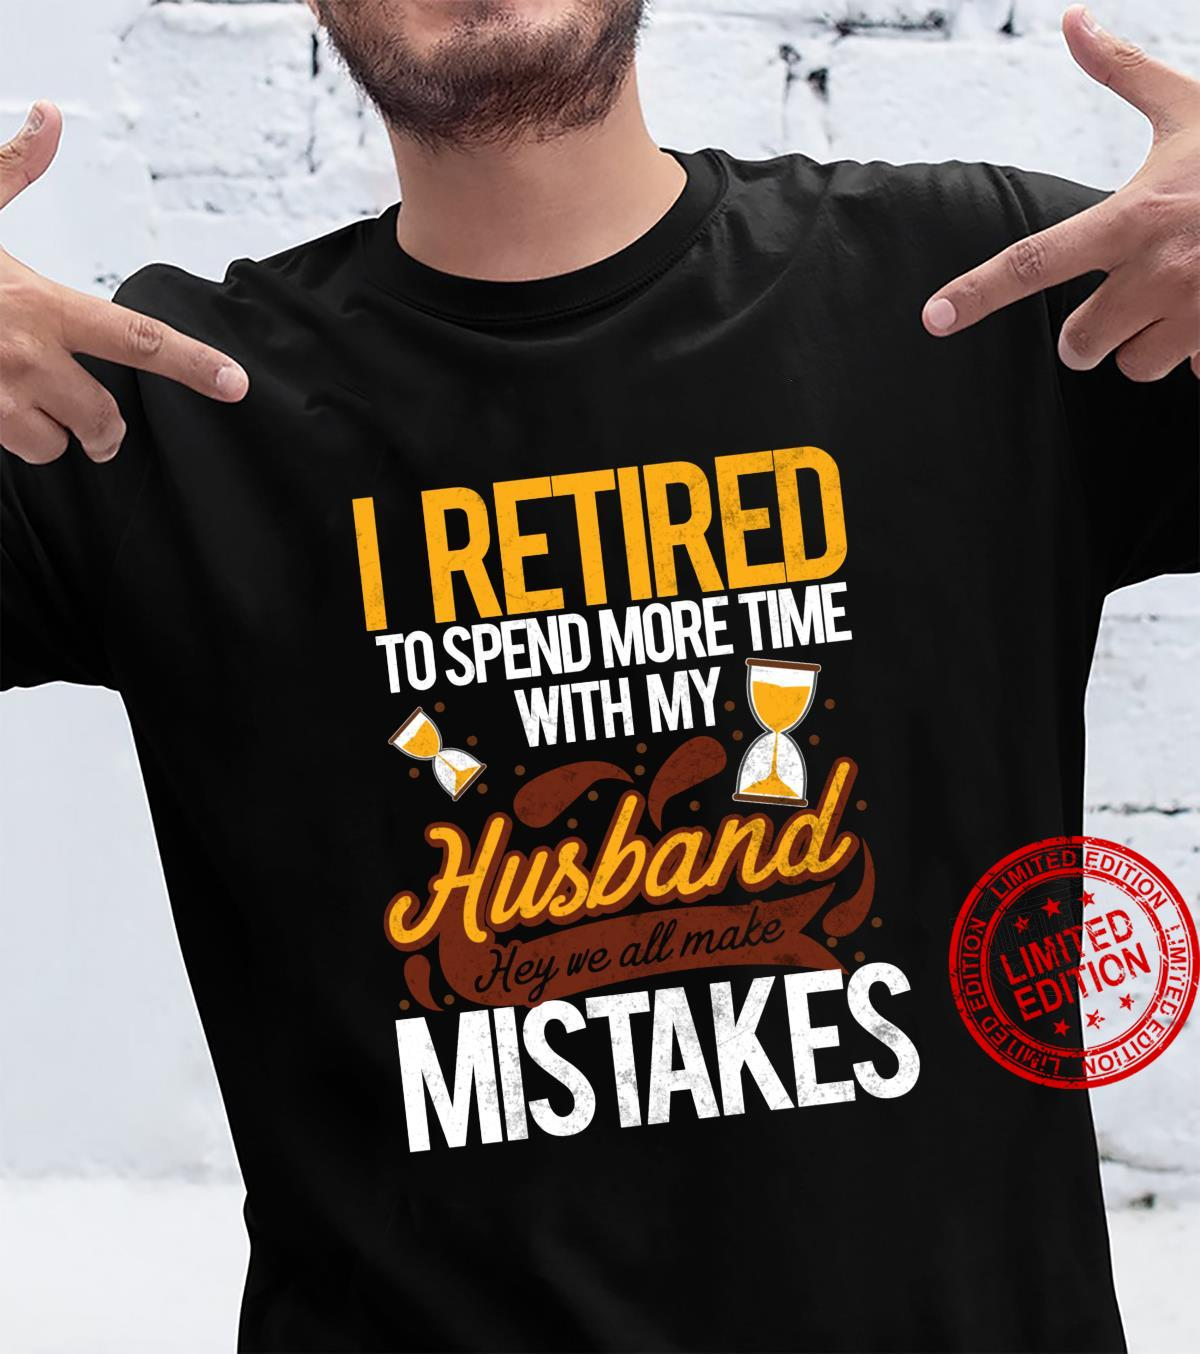 Retired Retirement Quote Pension Shirt